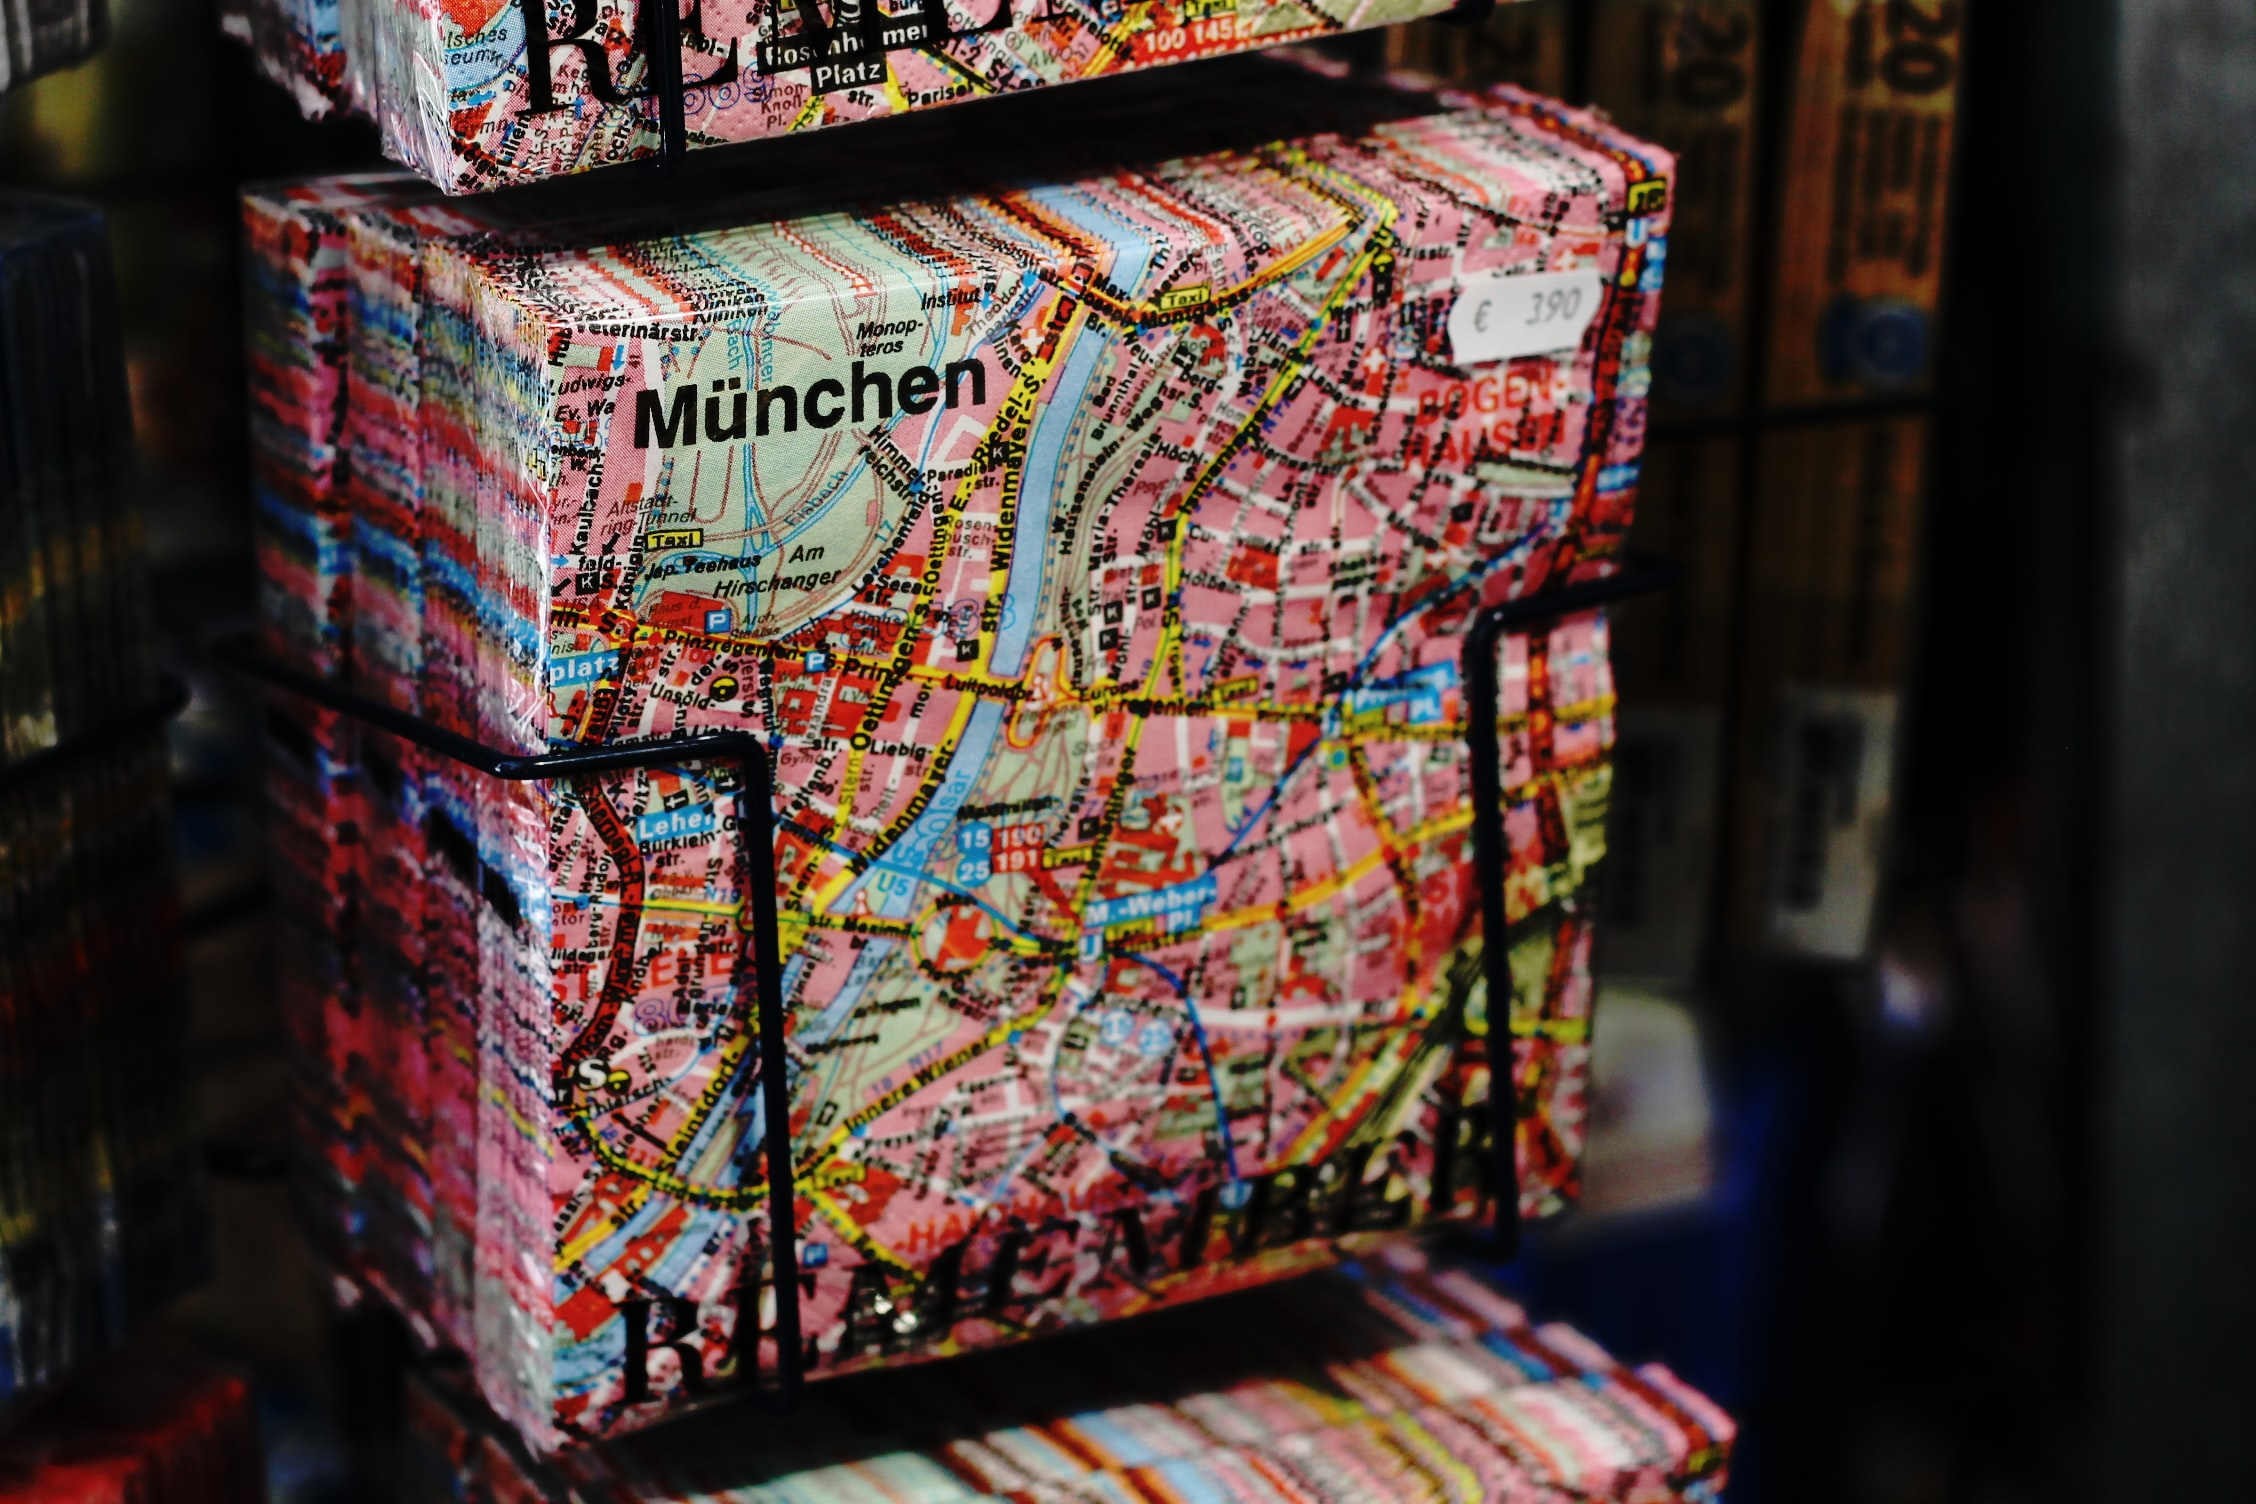 A pack of napkins with the map of Munich printed on them in a souvenir store